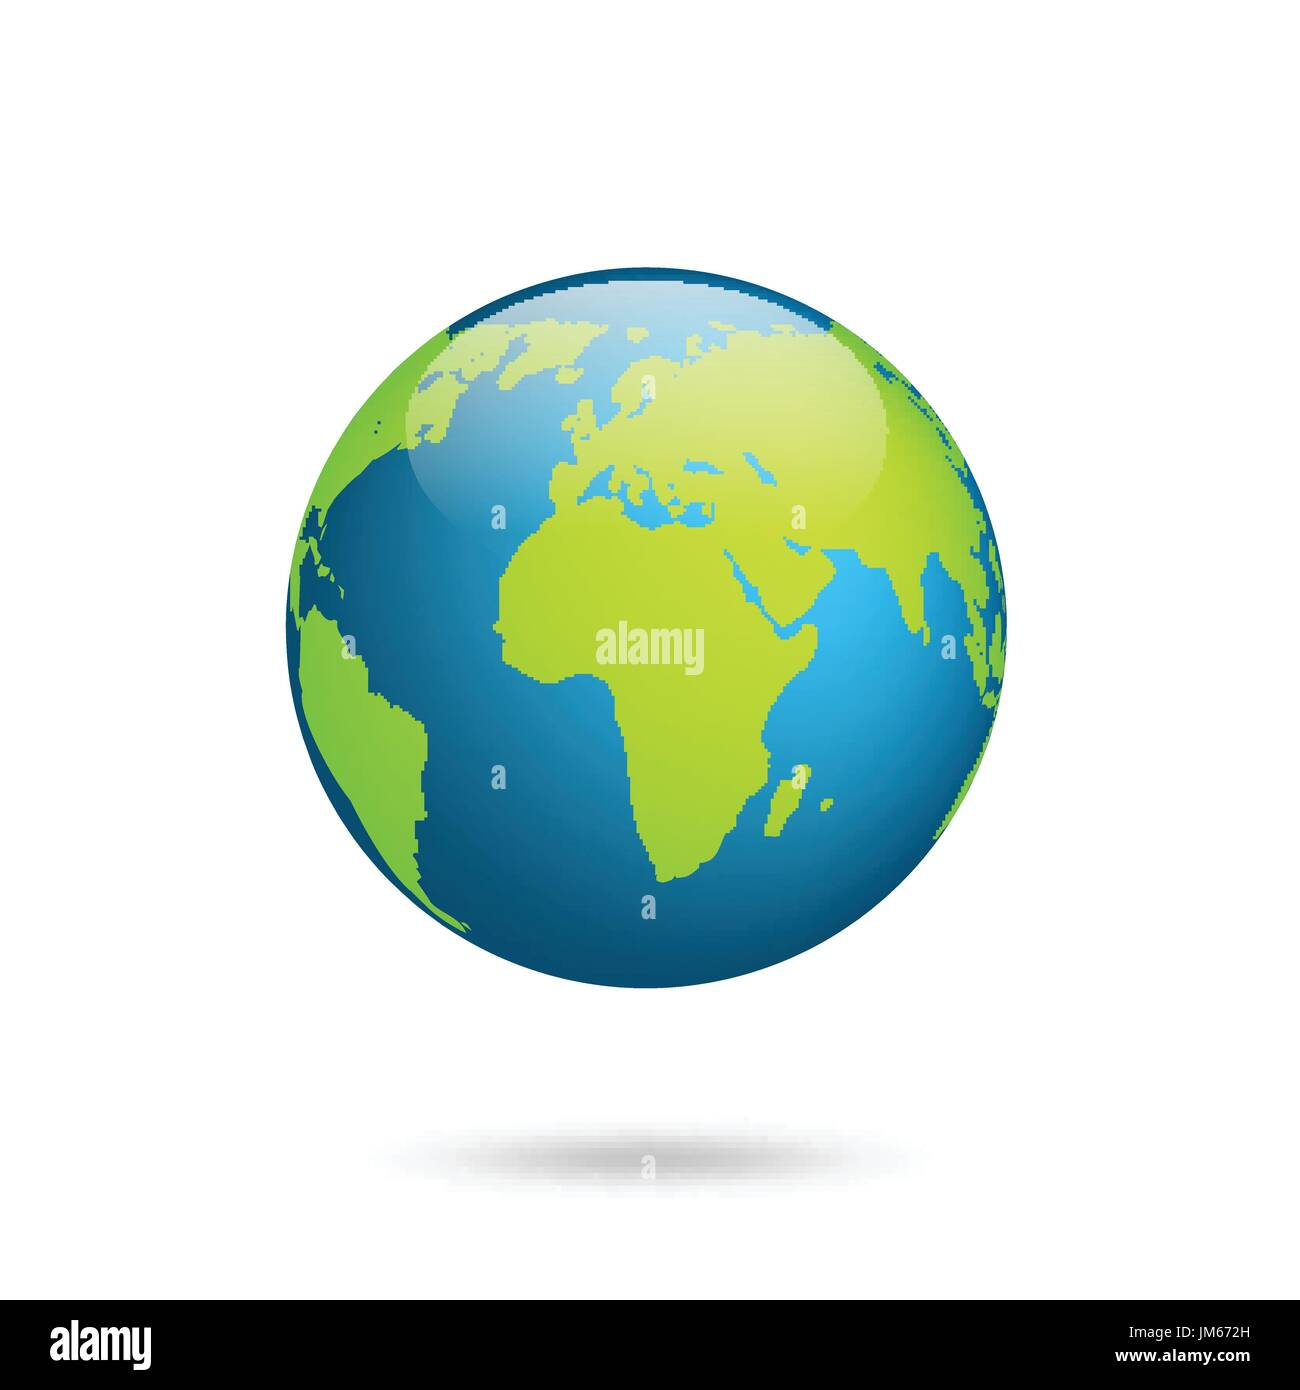 Earth globe world map set planet with continentsrica asia stock world map set planet with continentsrica asia australia europe north america and south america gumiabroncs Image collections